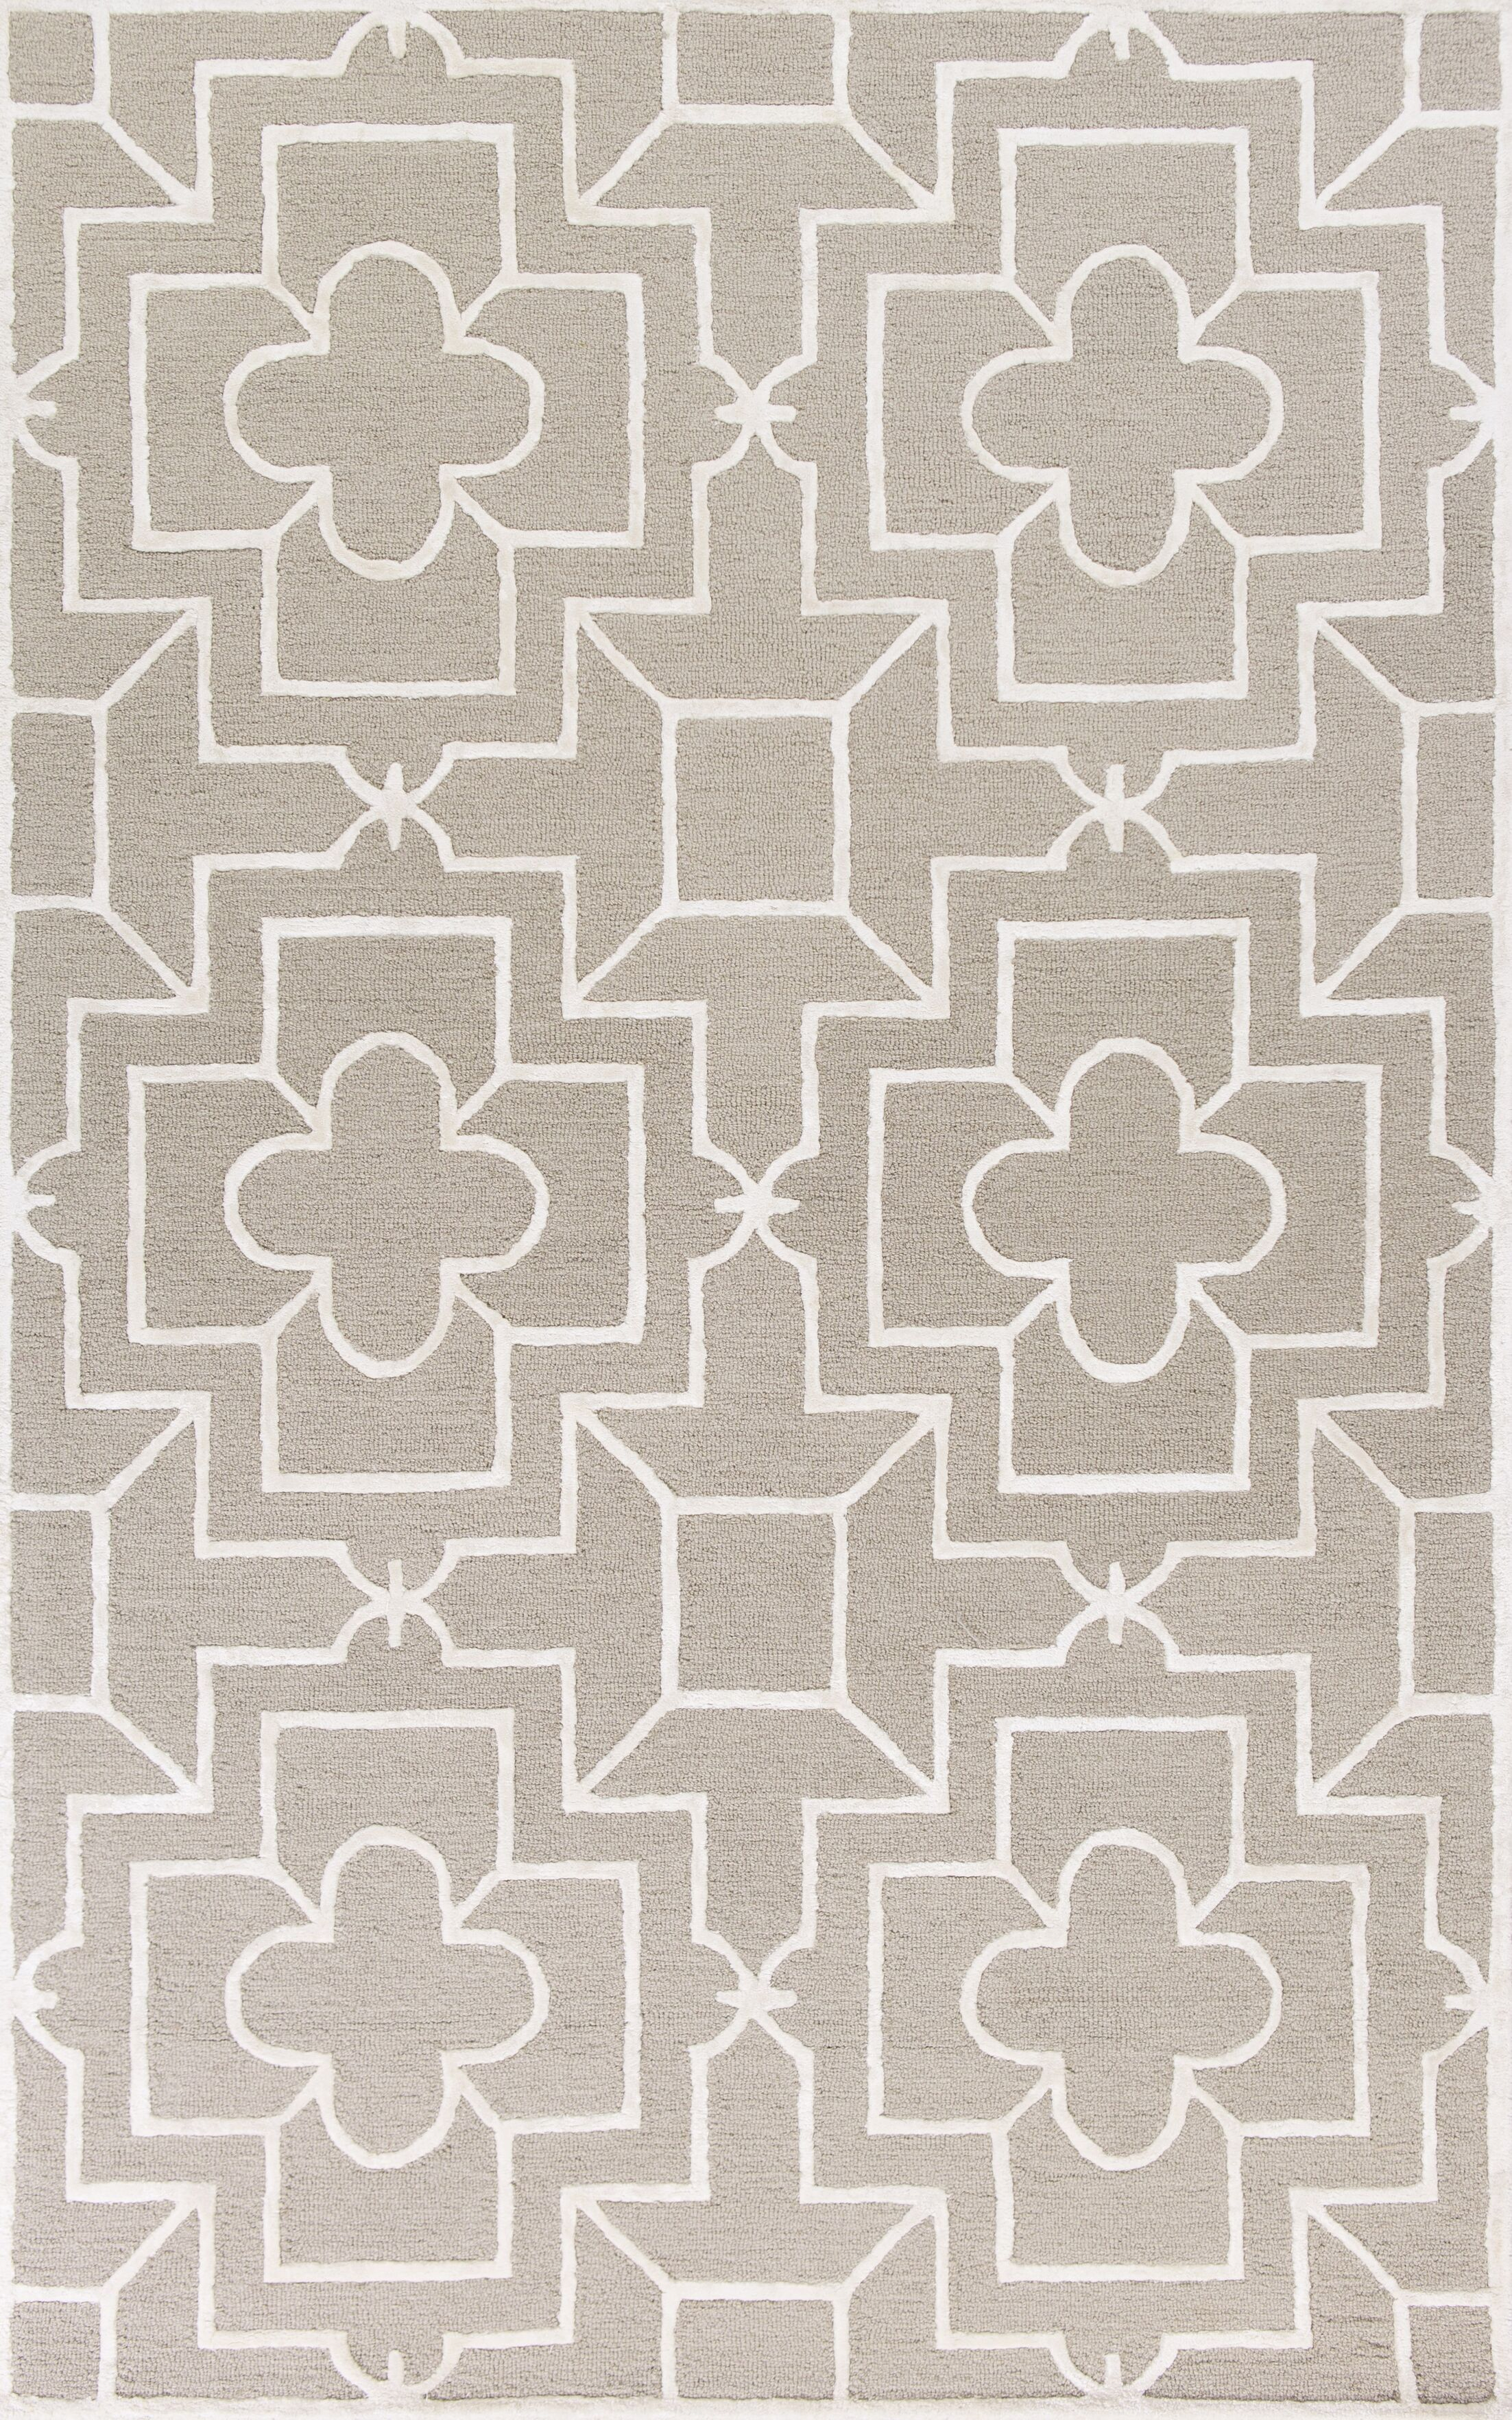 Che Hand-Tufted Beige/Gray Area Rug Rug Size: Rectangle 8' x 10'6